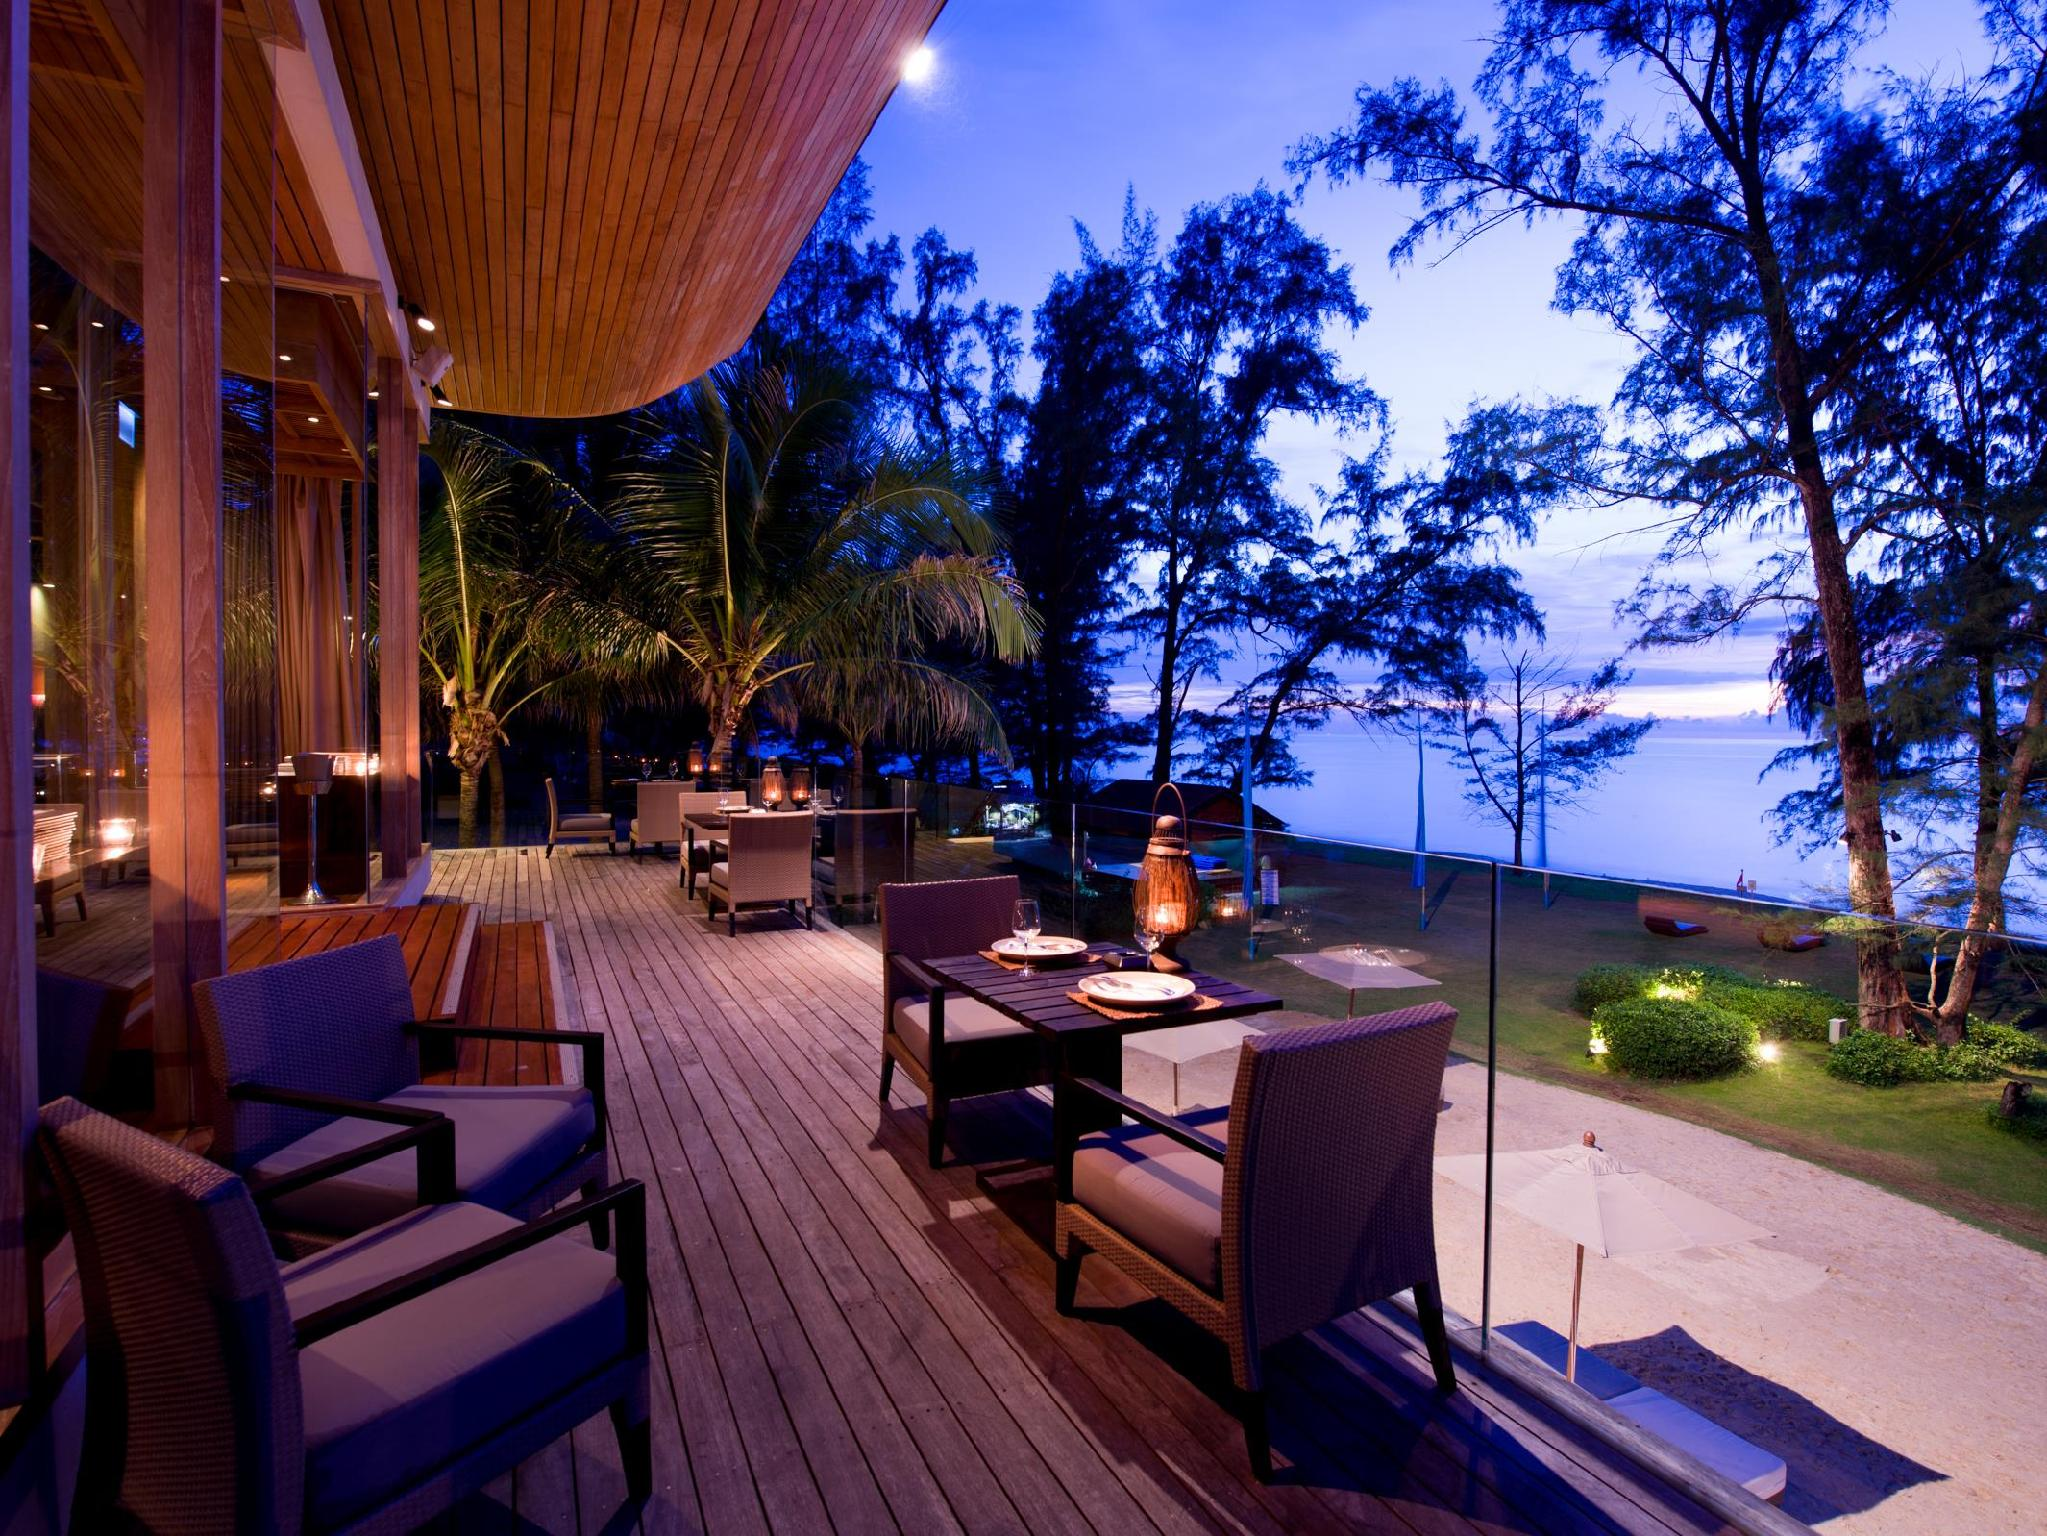 Renaissance Phuket Resort & Spa A Marriott Luxury & Lifestyle Hotel55